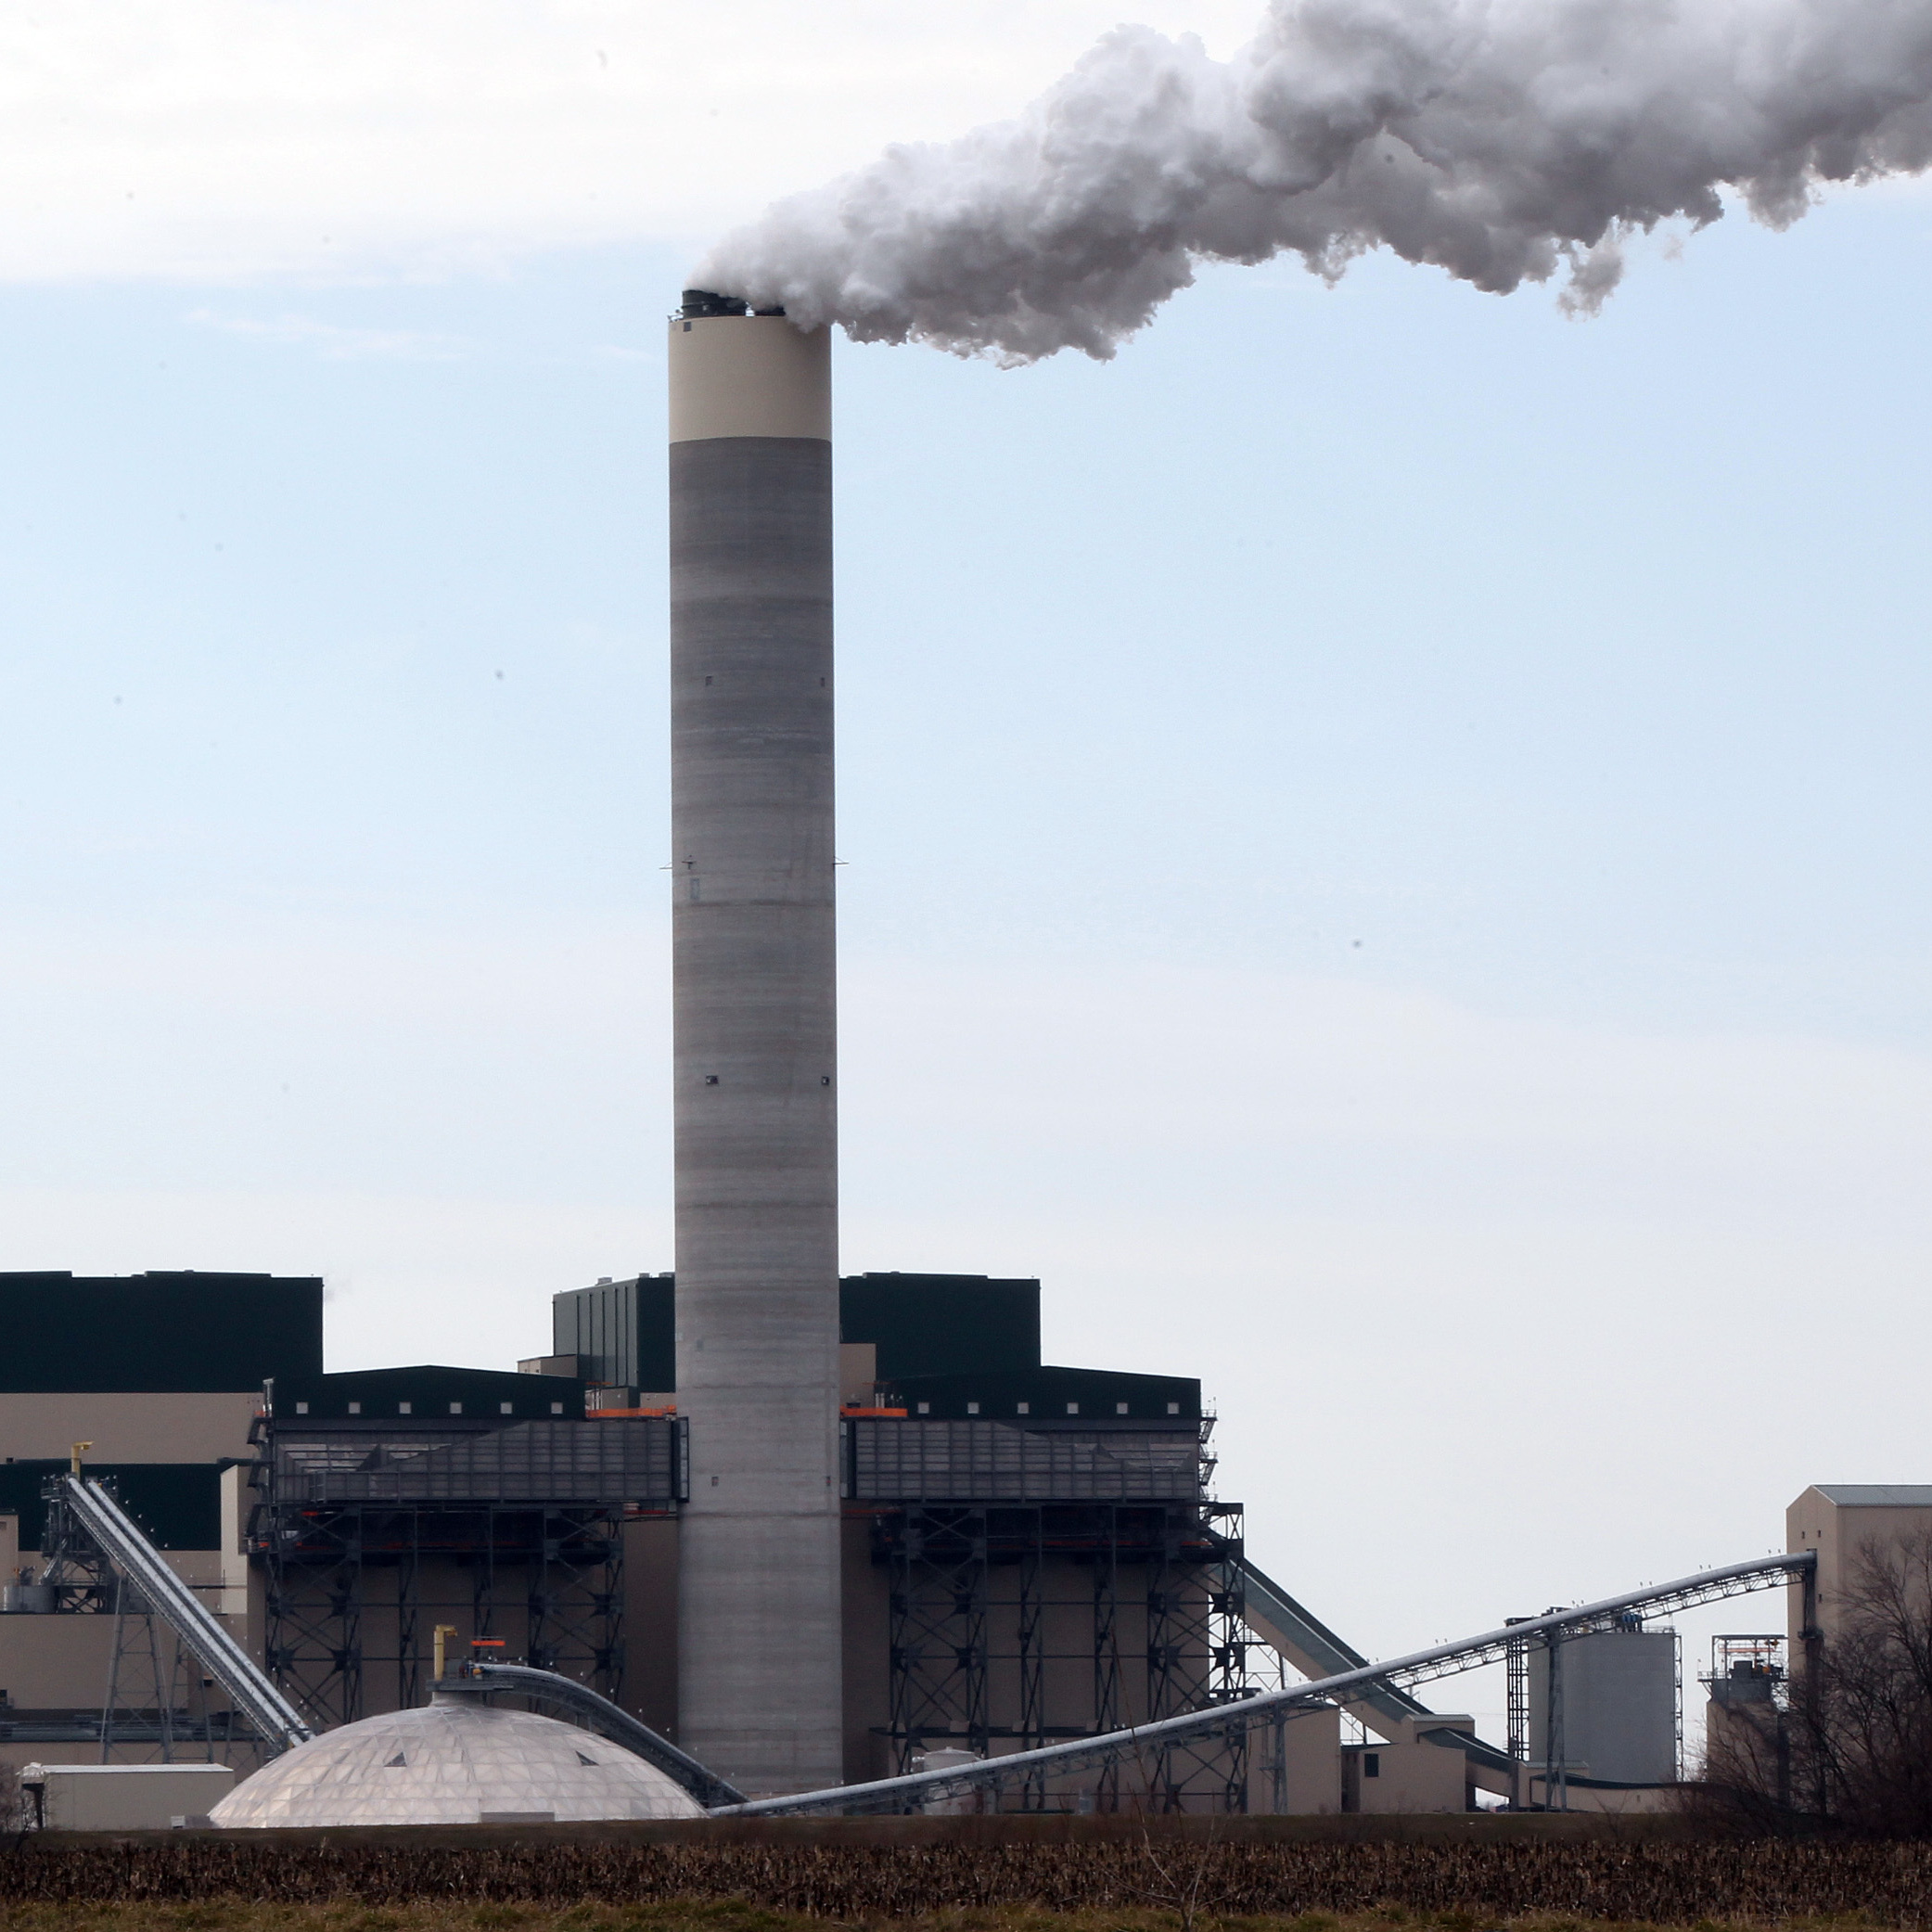 Illinois' Prairie State Energy plant, seen here on Feb. 23, 2012, shortly before it came on line for the first time. The largest coal-fired power plant built in the U.S. in the past 30 years, it is expected to be in operation until at least the 2040s.